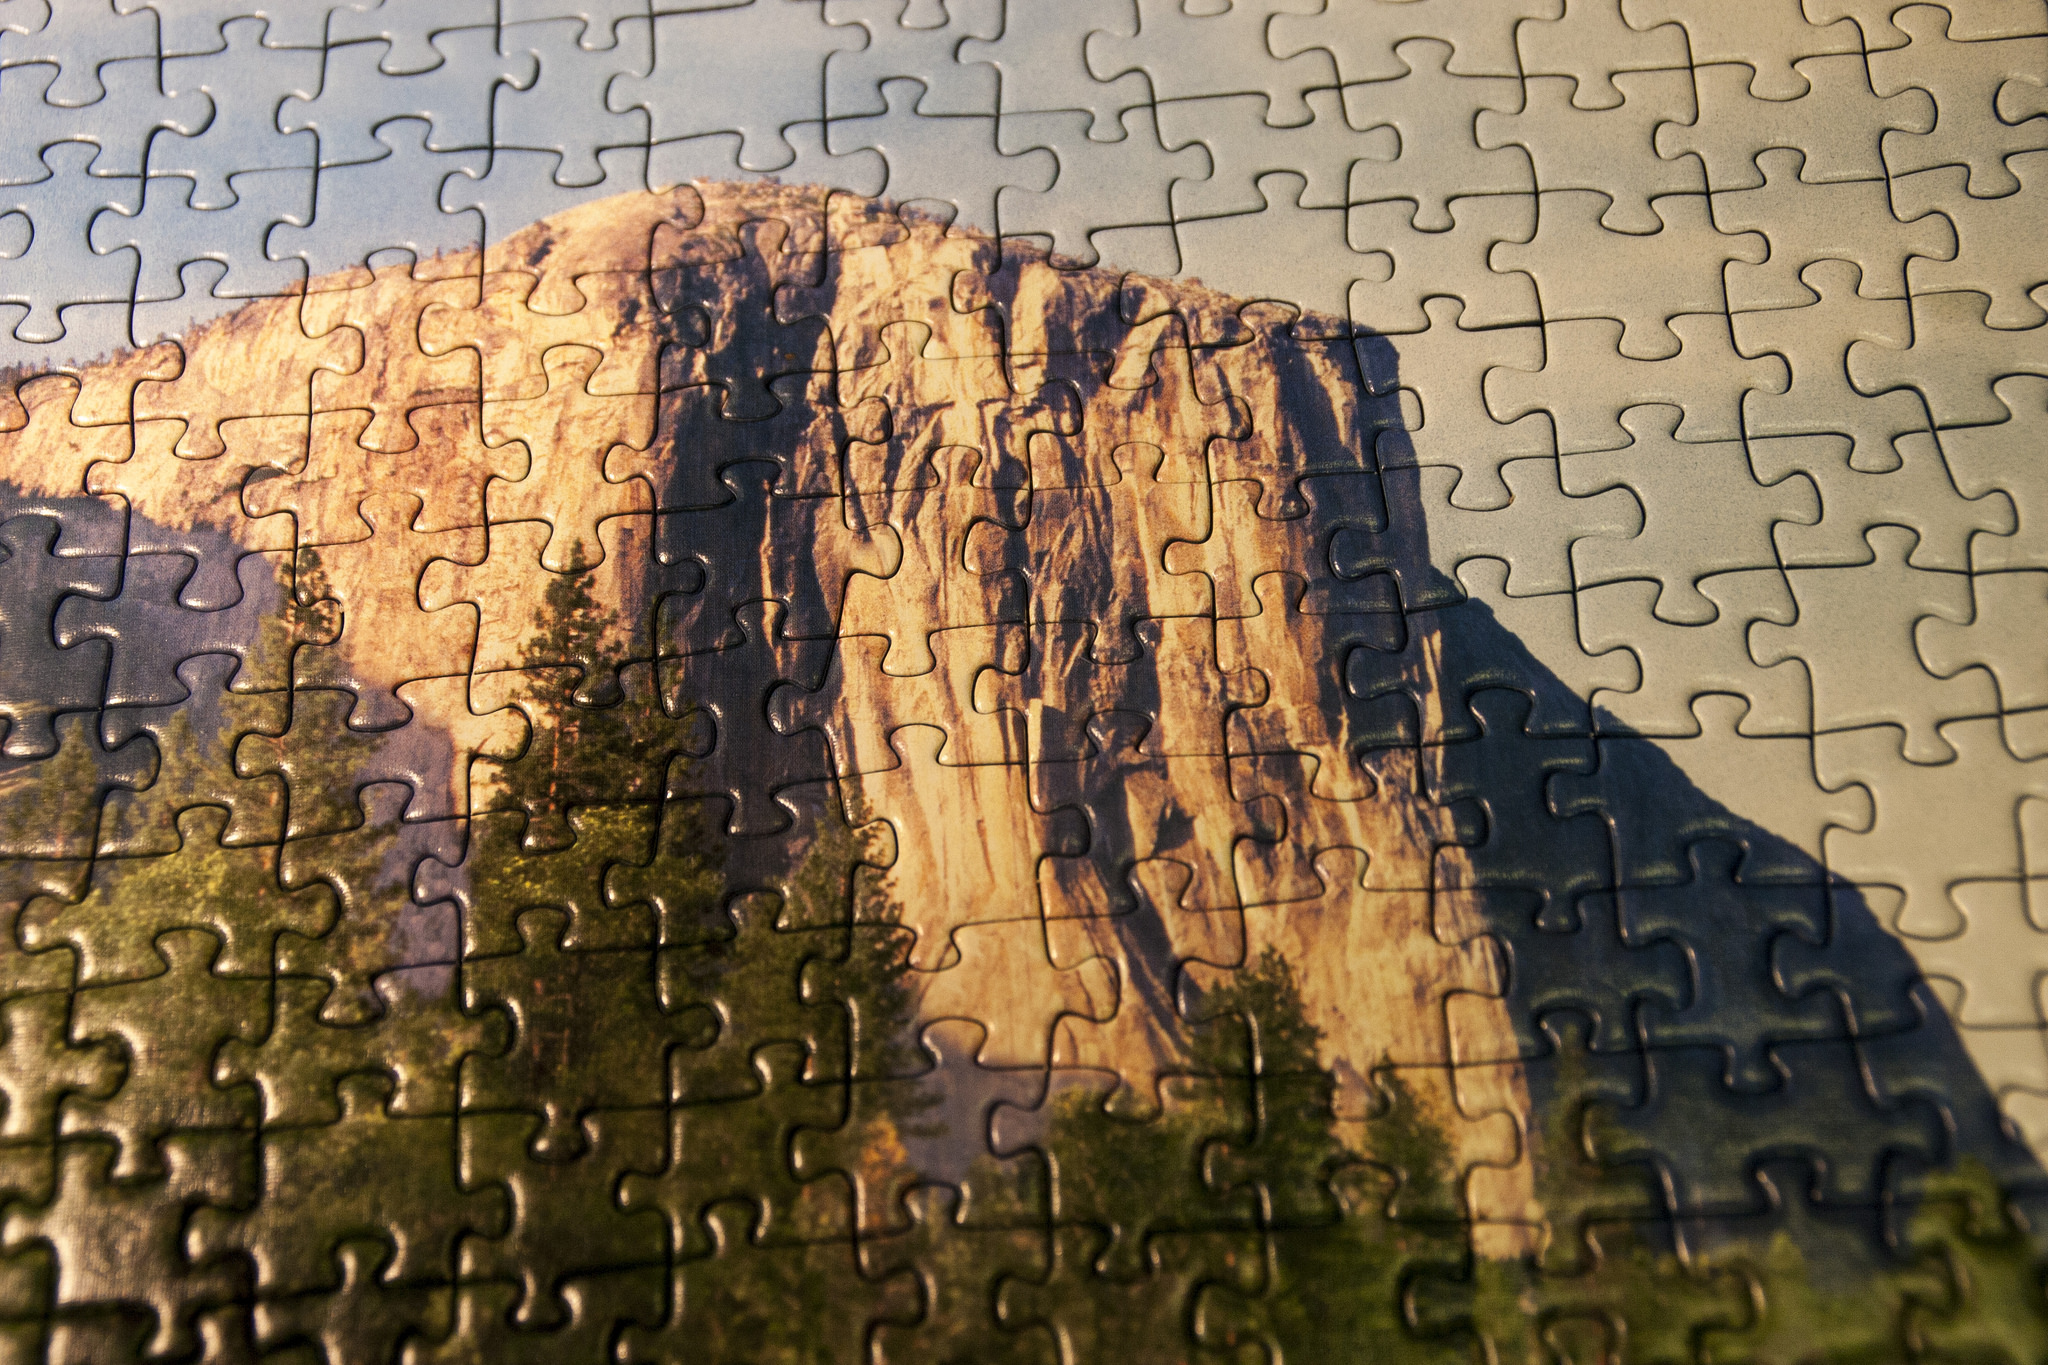 Foto-Puzzle vom Yosemite Nationalpark